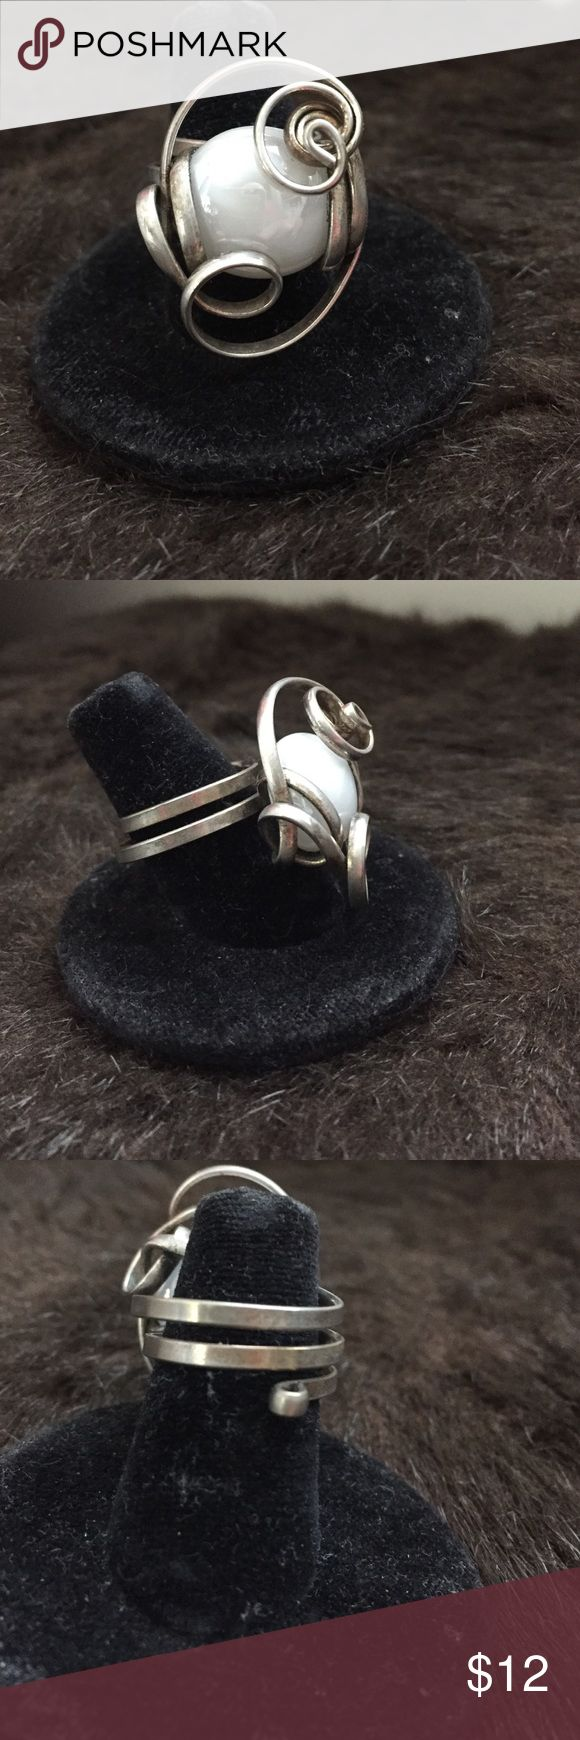 Jeweler Wire Ring Sterling jeweler wire ring with white pebble stone in center. Very different. All these rings are to big for me or I would not be selling them. 😞. Pre loved. Excellent condition Jewelry Rings